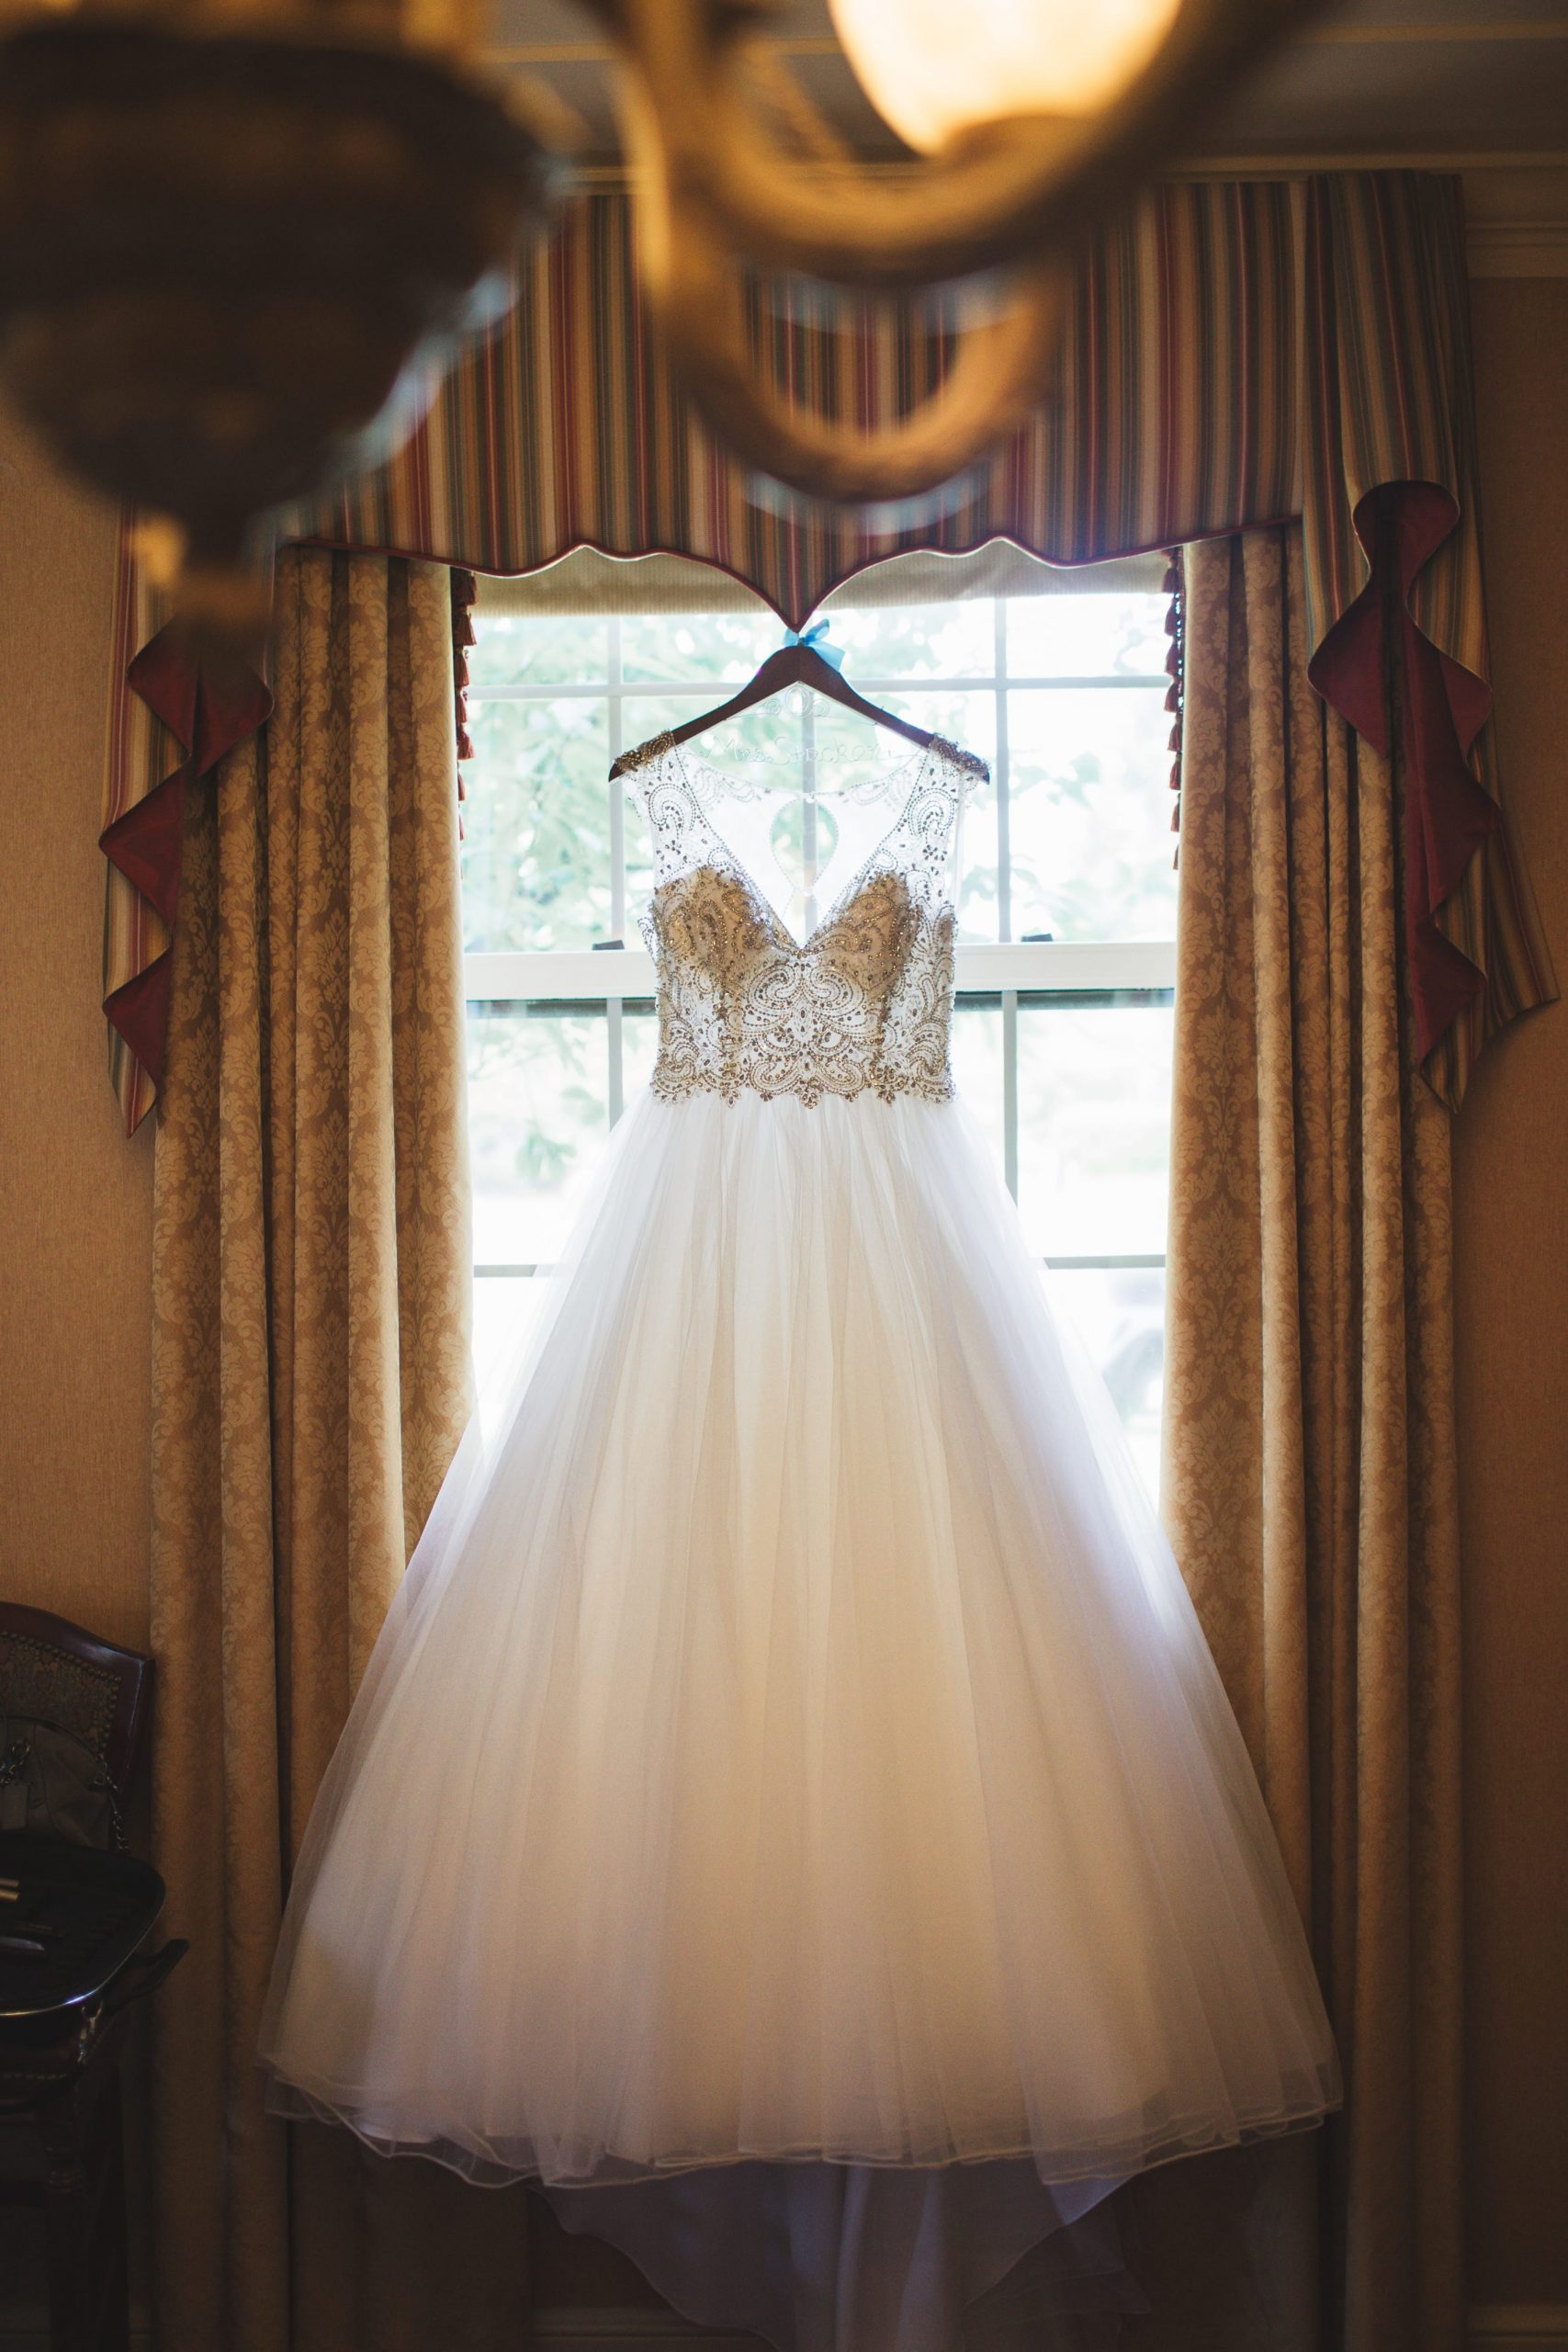 dress hanging from window with dramatic lighting